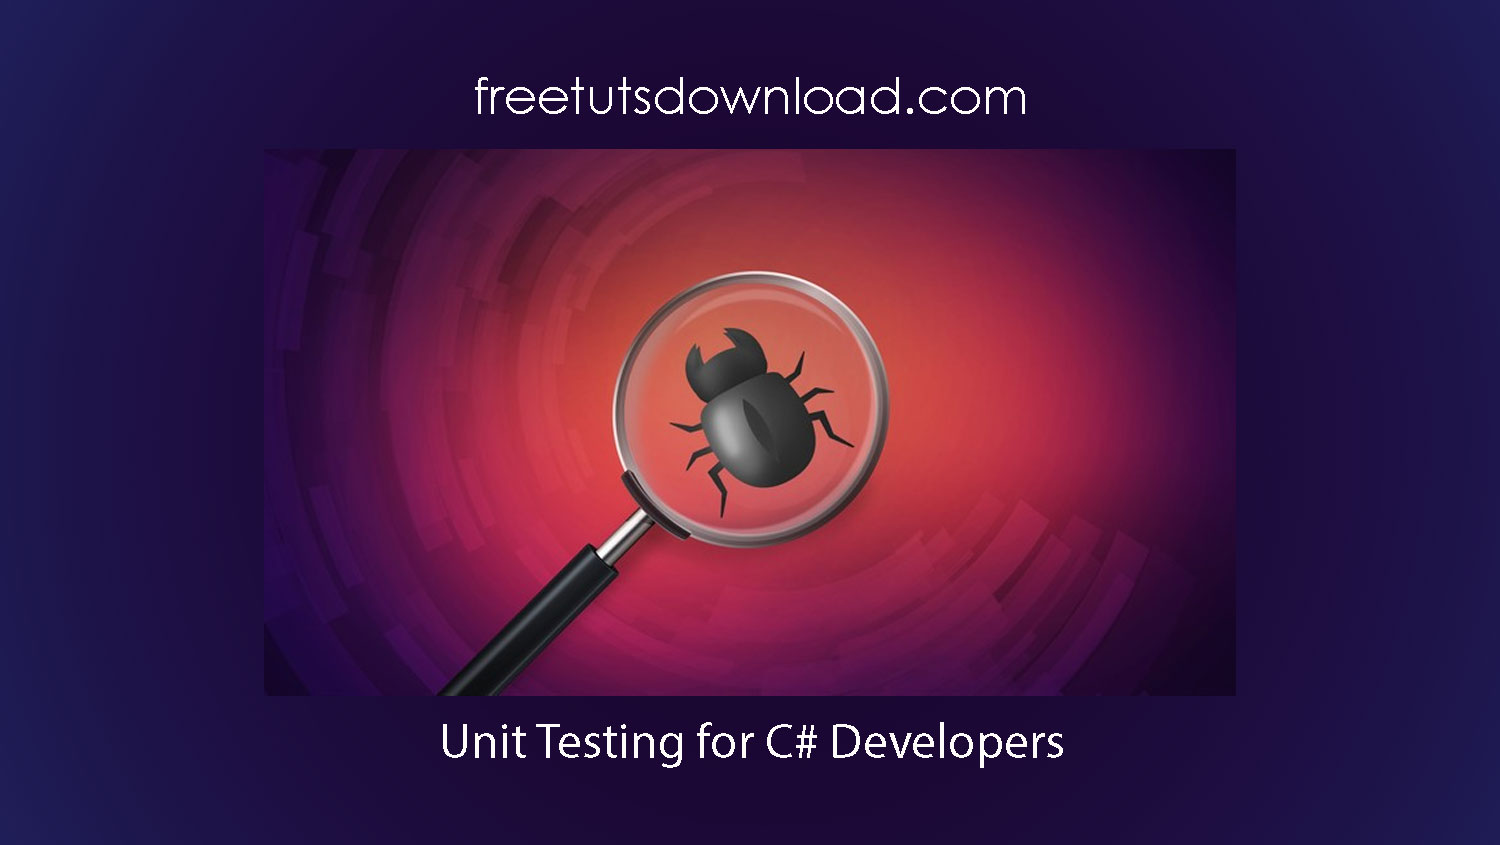 Unit Testing for C# Developers Free Download